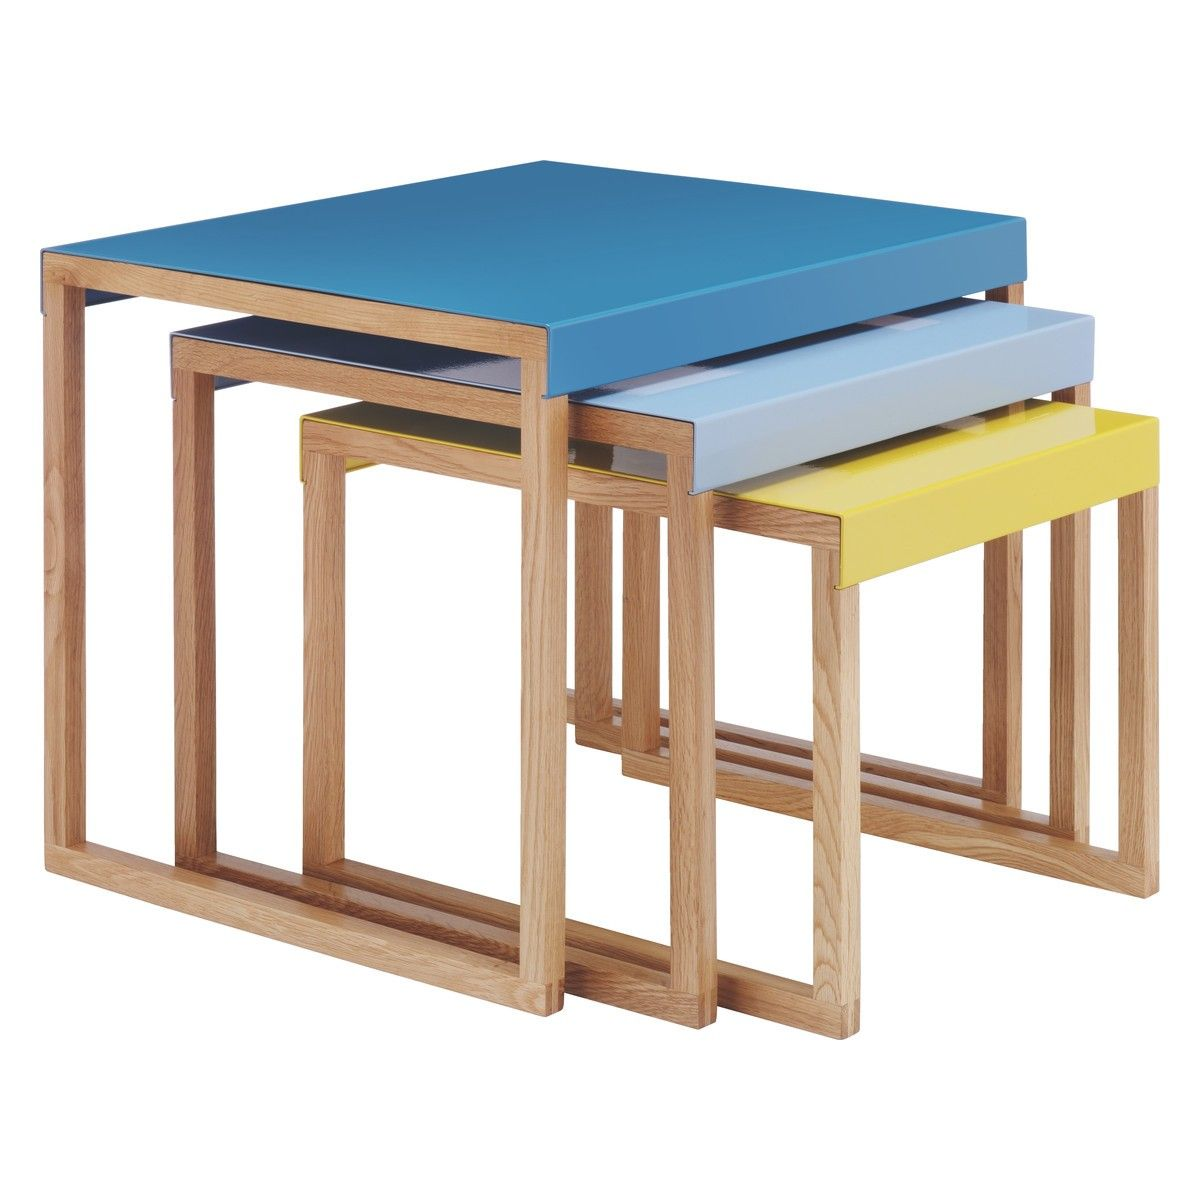 KILO Blue and yellow metal nest of 3 side tables Nest Metals and